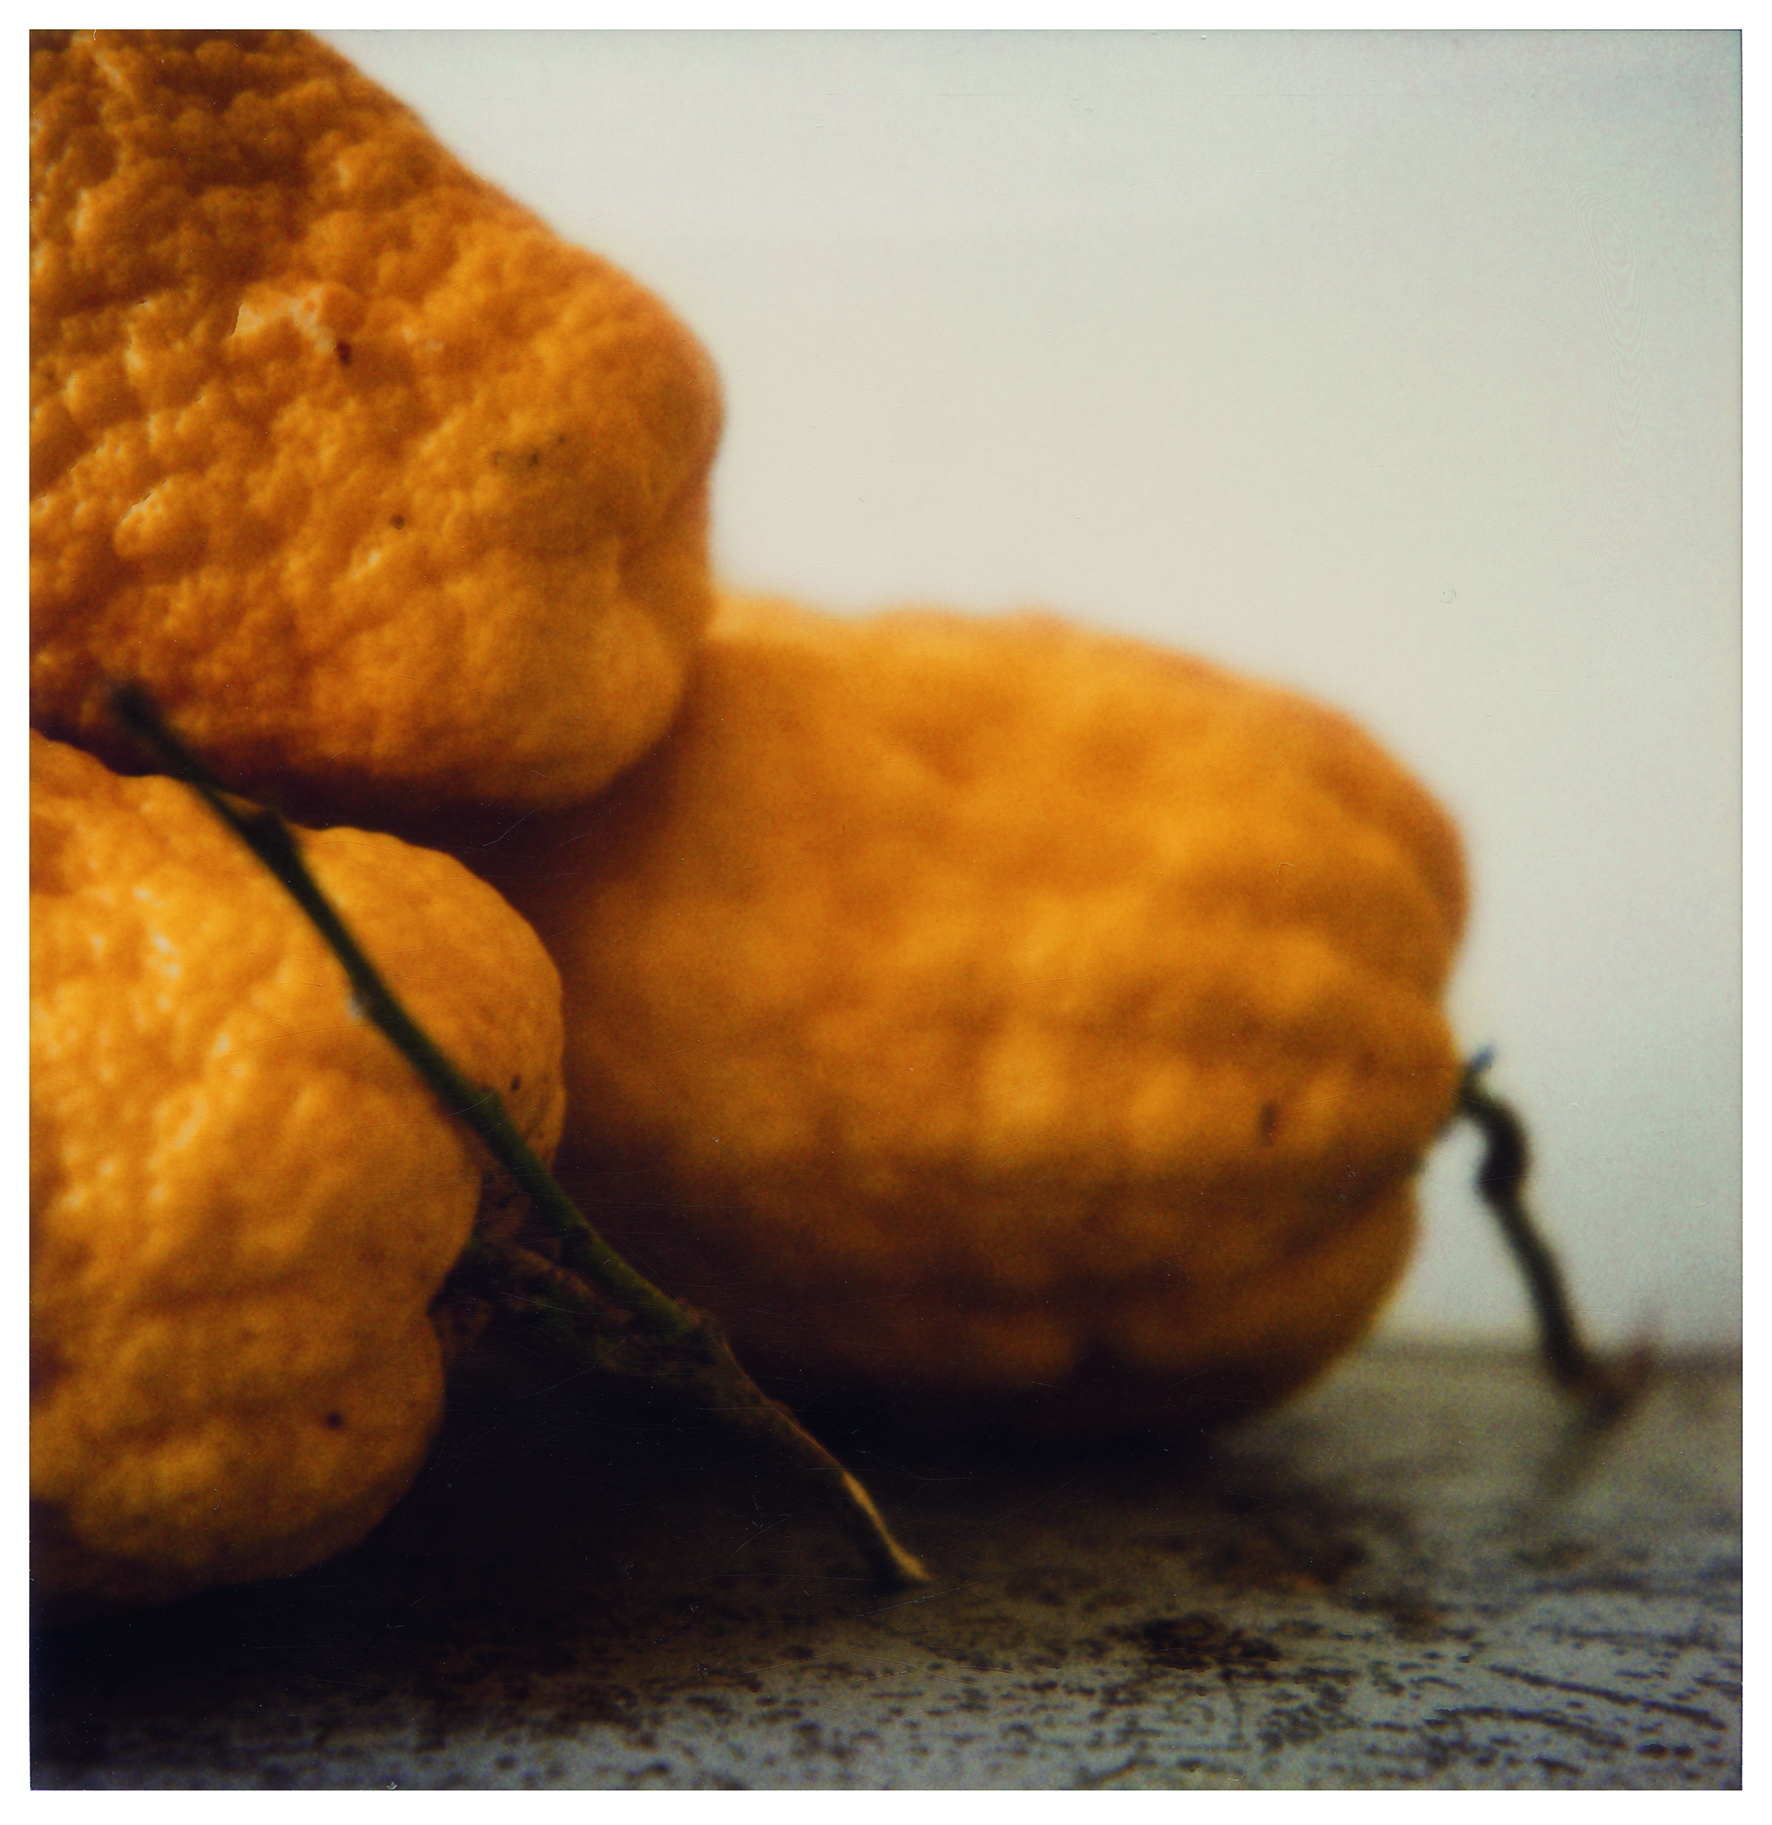 Lemons, Gaète  (1998) Cy Twombly   © Cy Twombly Foundation, courtesy Archives Nicola Del Roscio